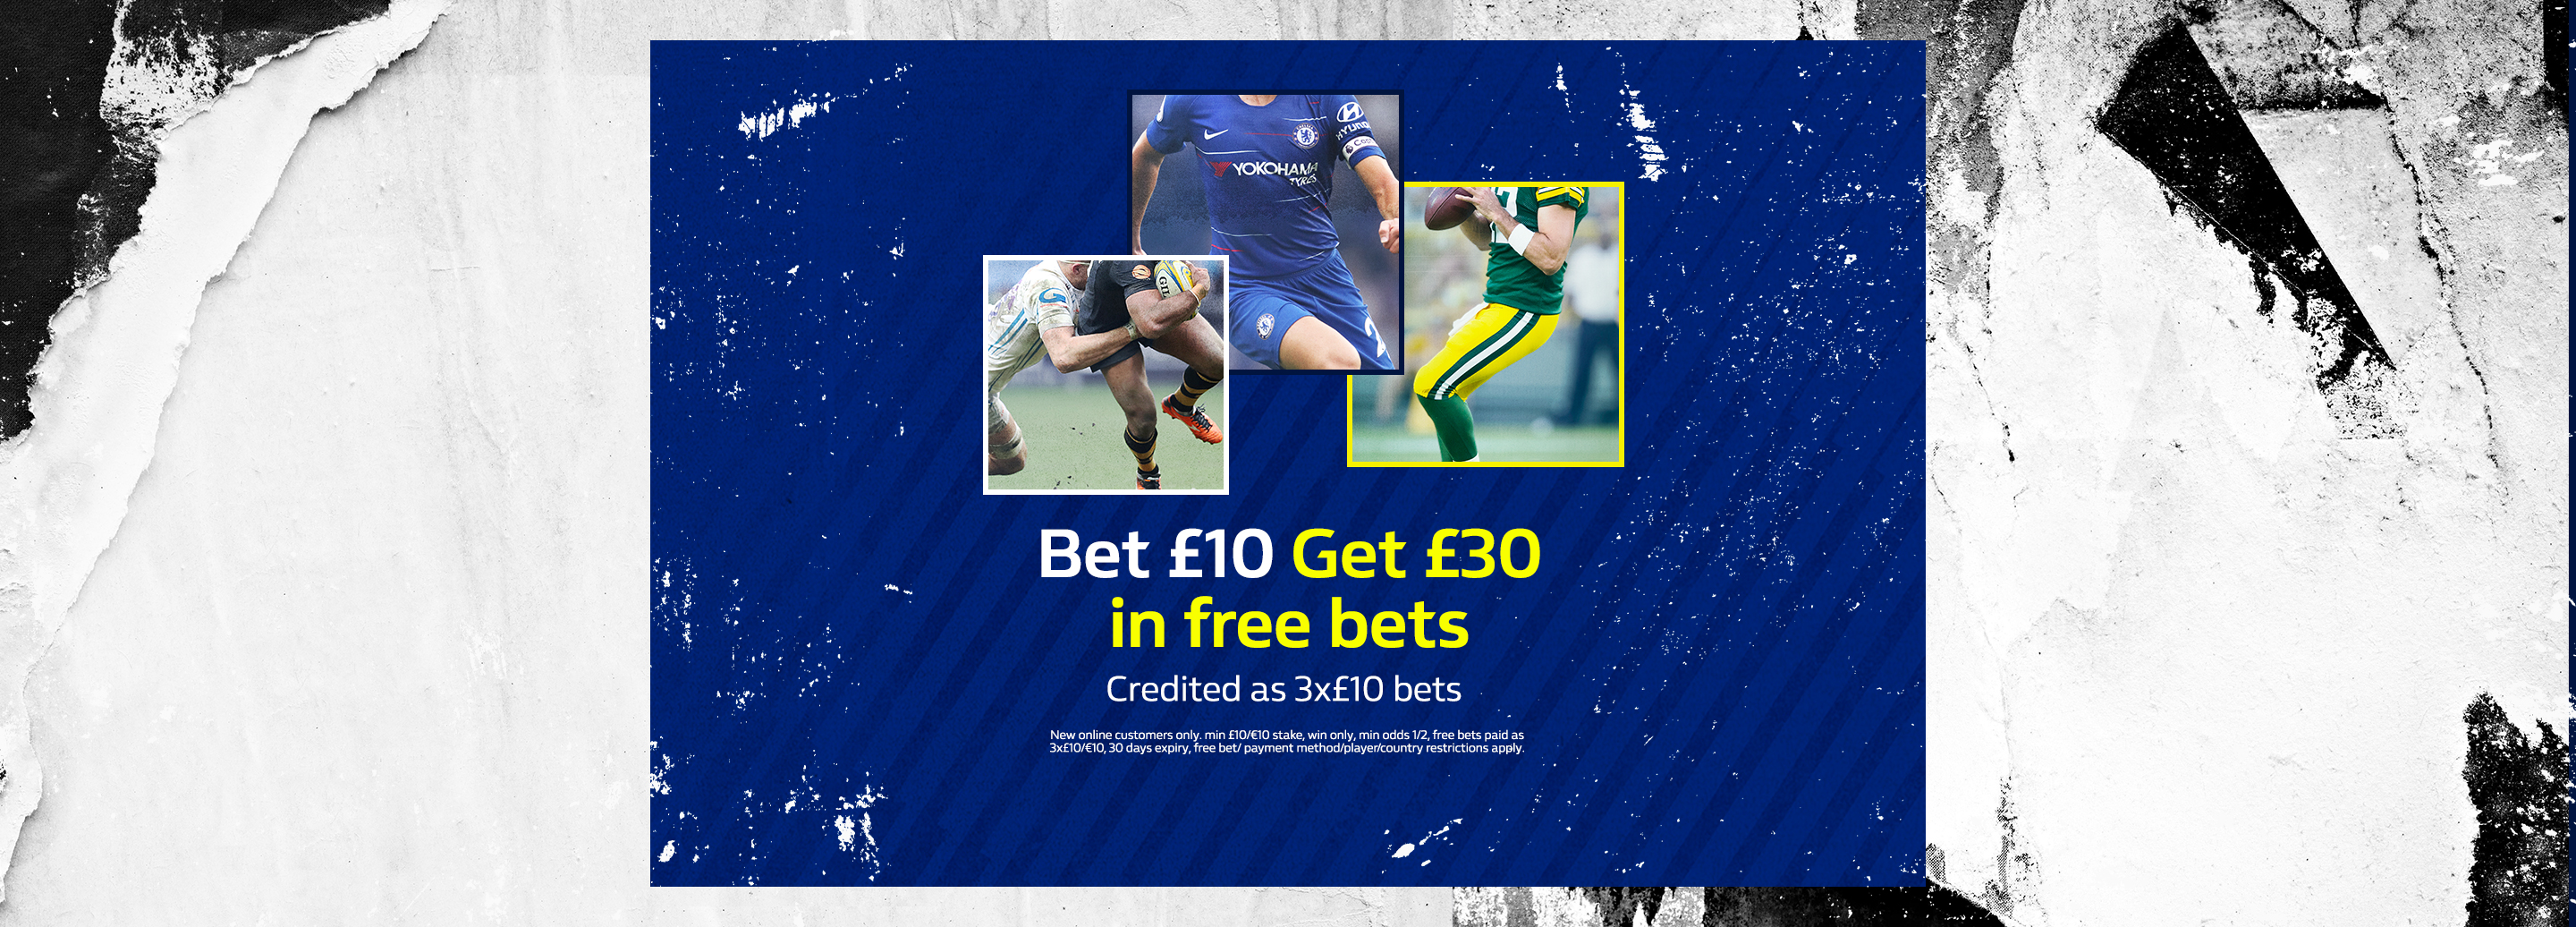 Bet £10 and get £30 | New customers get free bets with